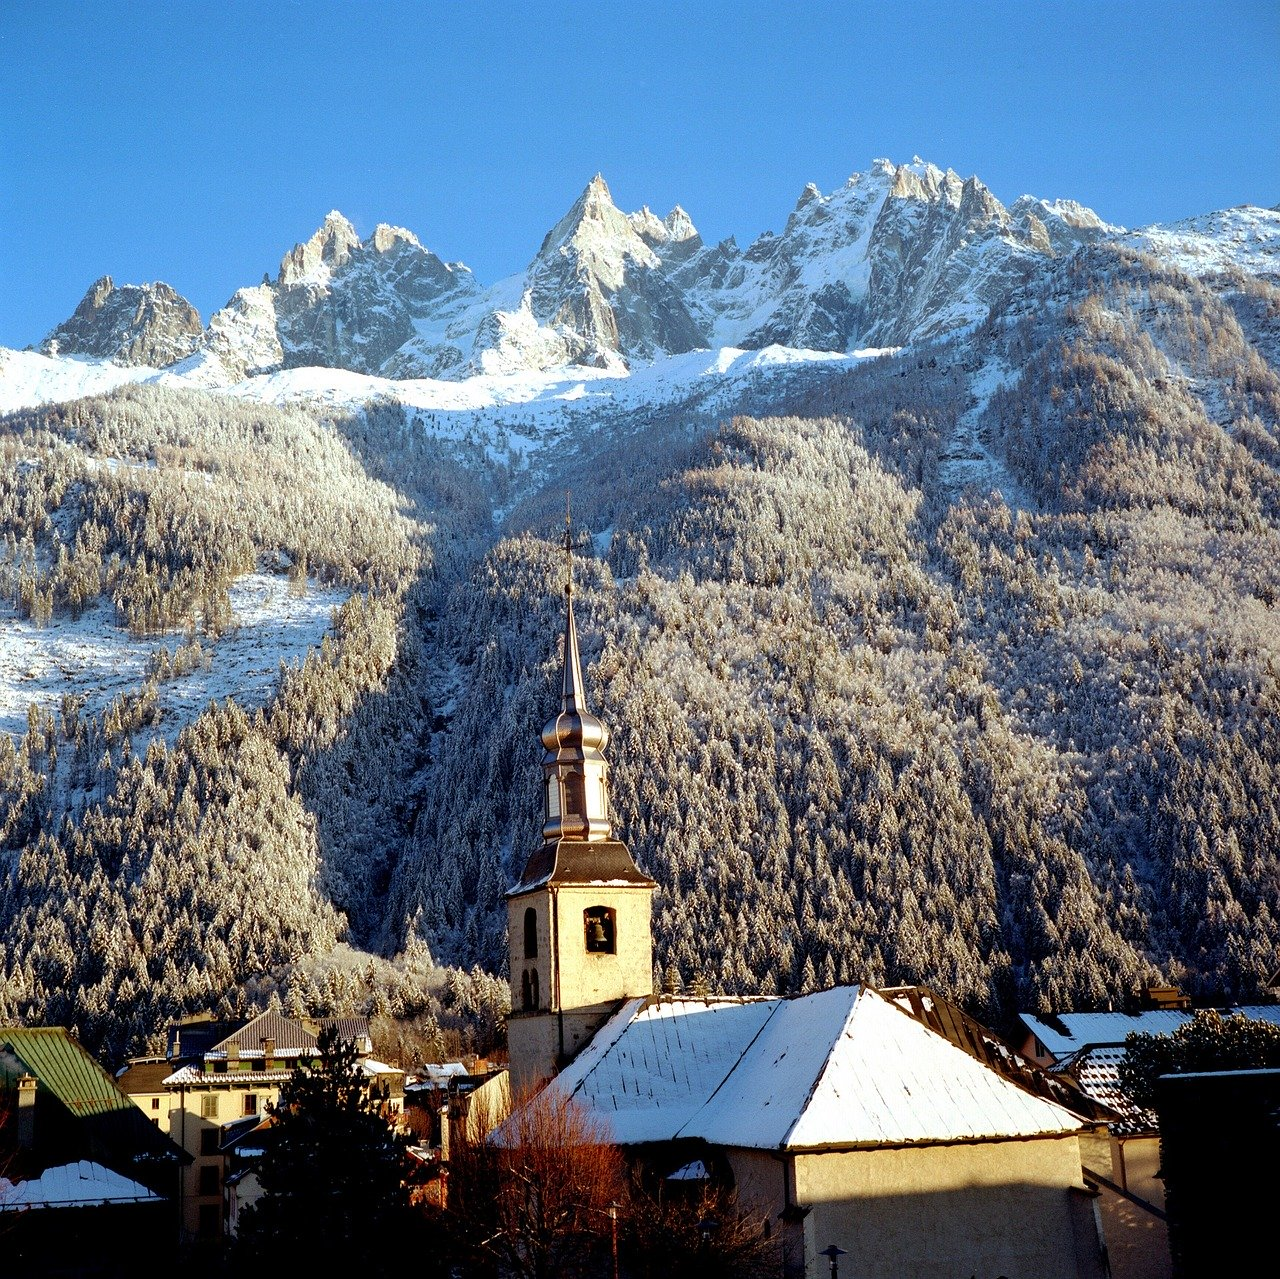 Vallée de Chamonix/Mont Blanc is one of the Highest ski resorts in France